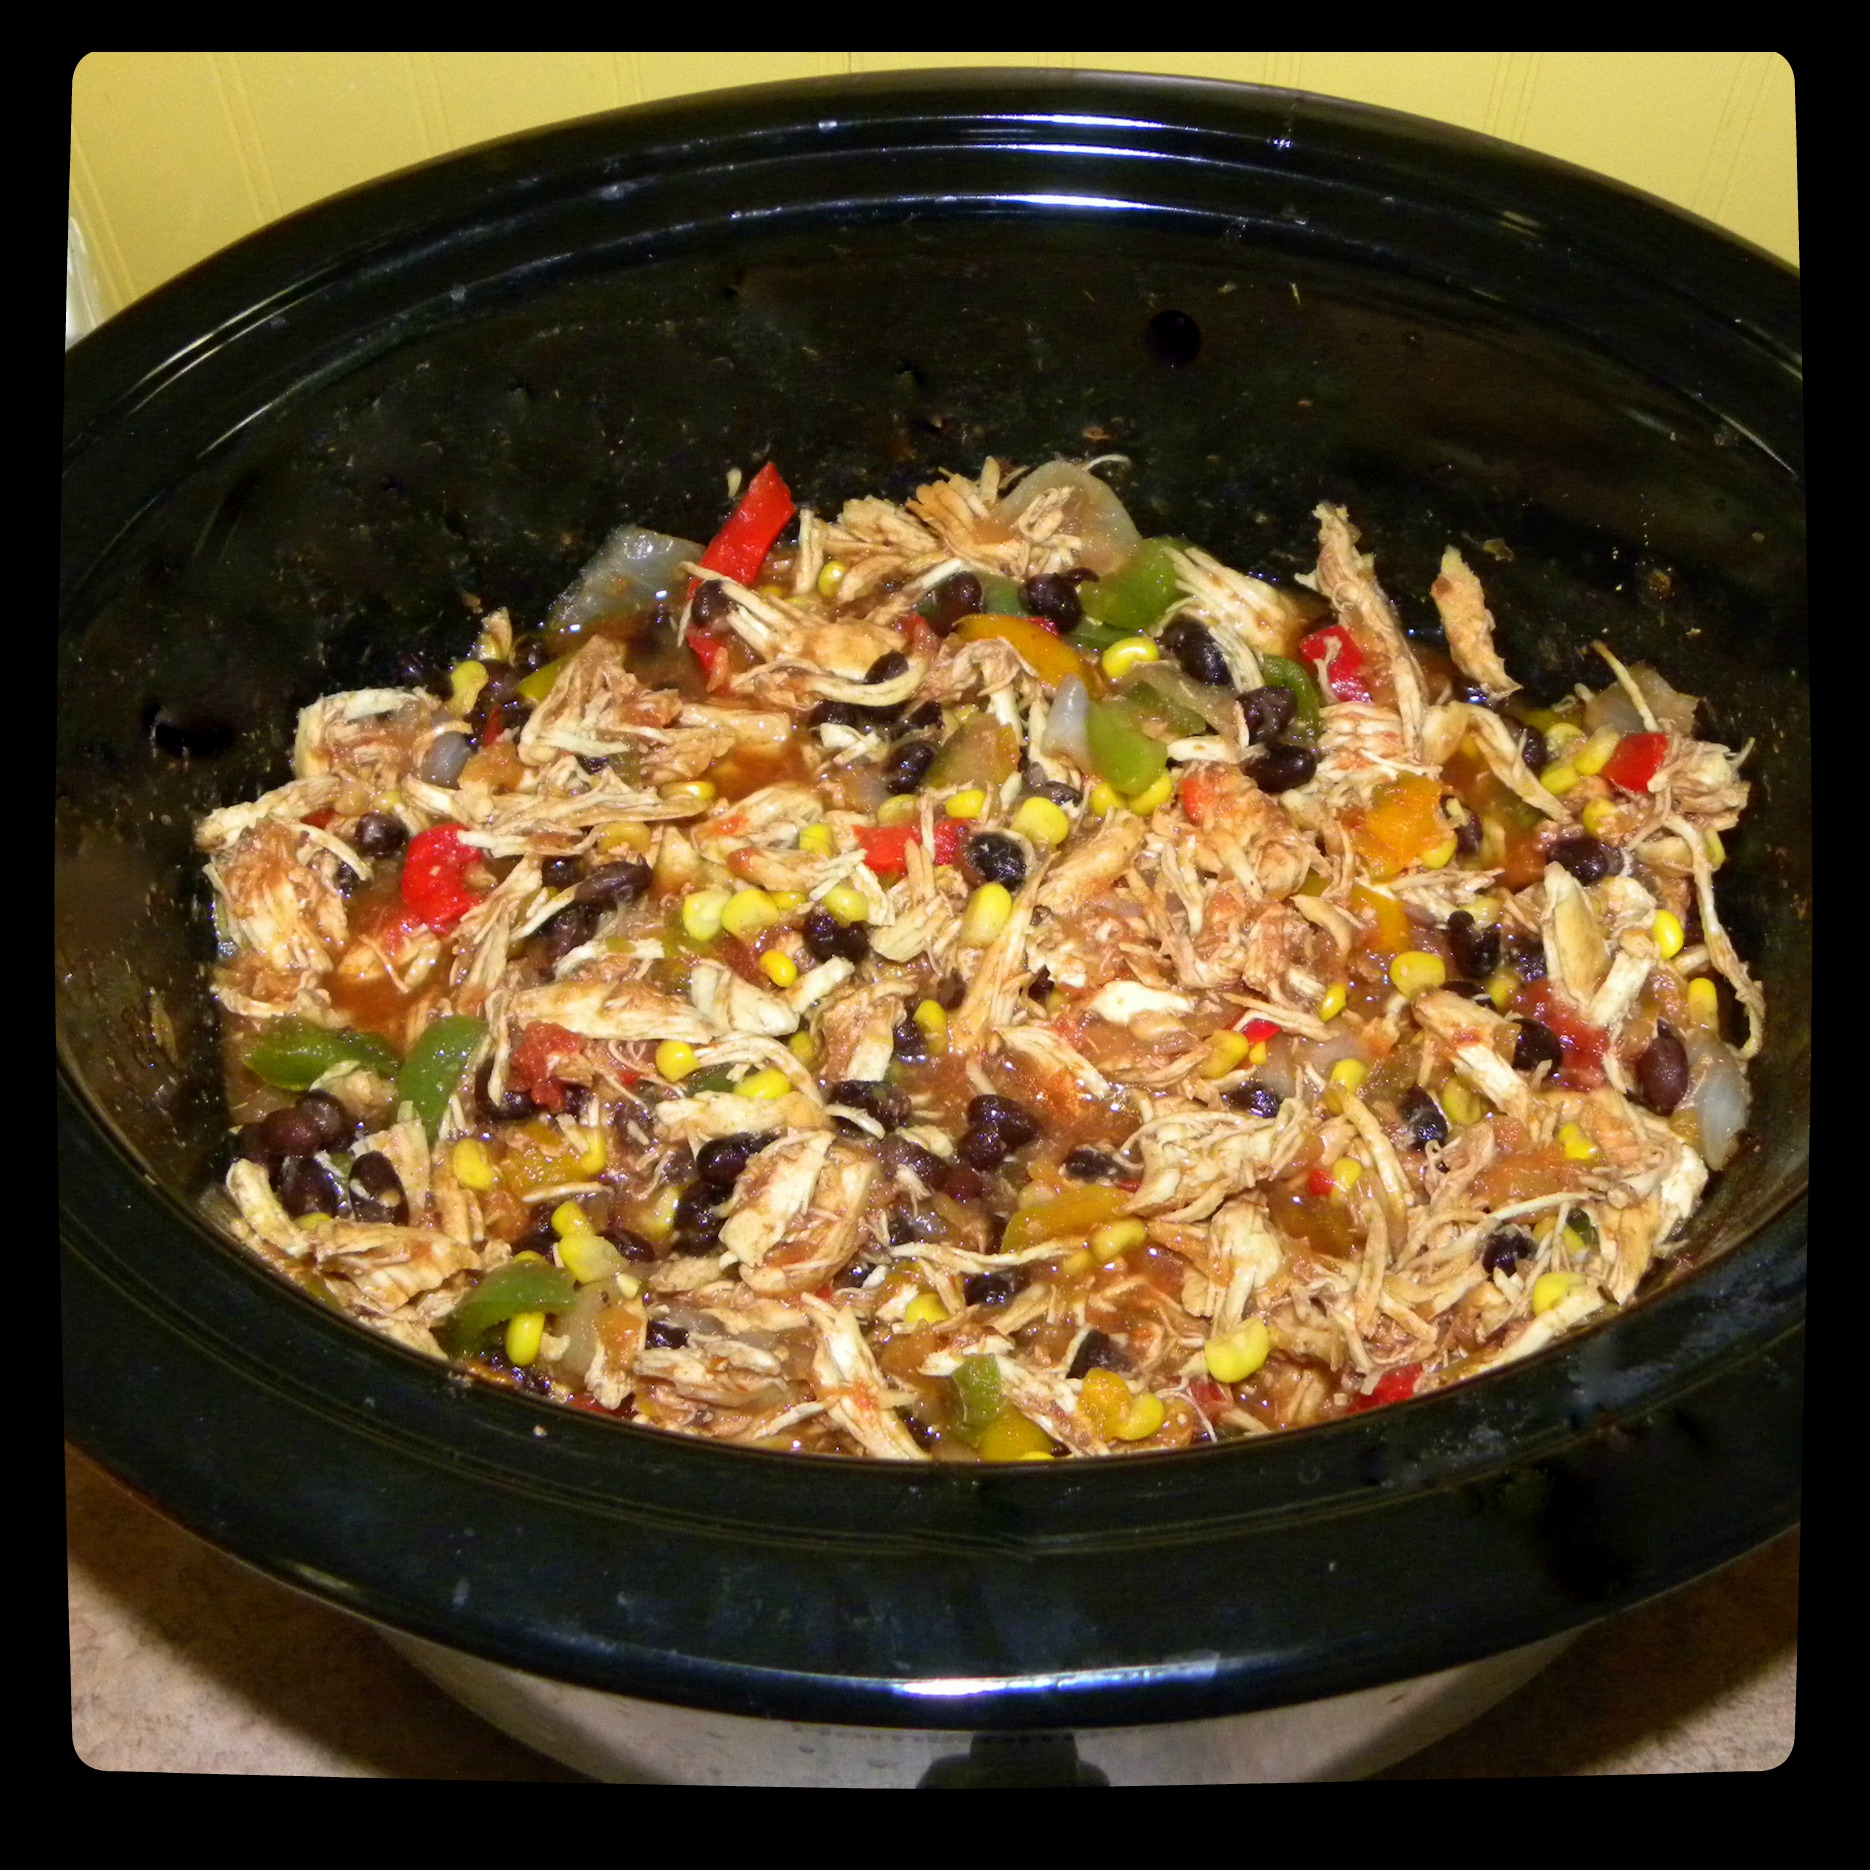 A true dump and cook crockpot recipe that results in the most flavorful, juicy Mexican pulled chicken. Shawn and I are extremely even tempered. In the 12 years we have been together (yes, 12 years, we started dating at 15 and 16!), we have never had a yelling fight.5/5(1).